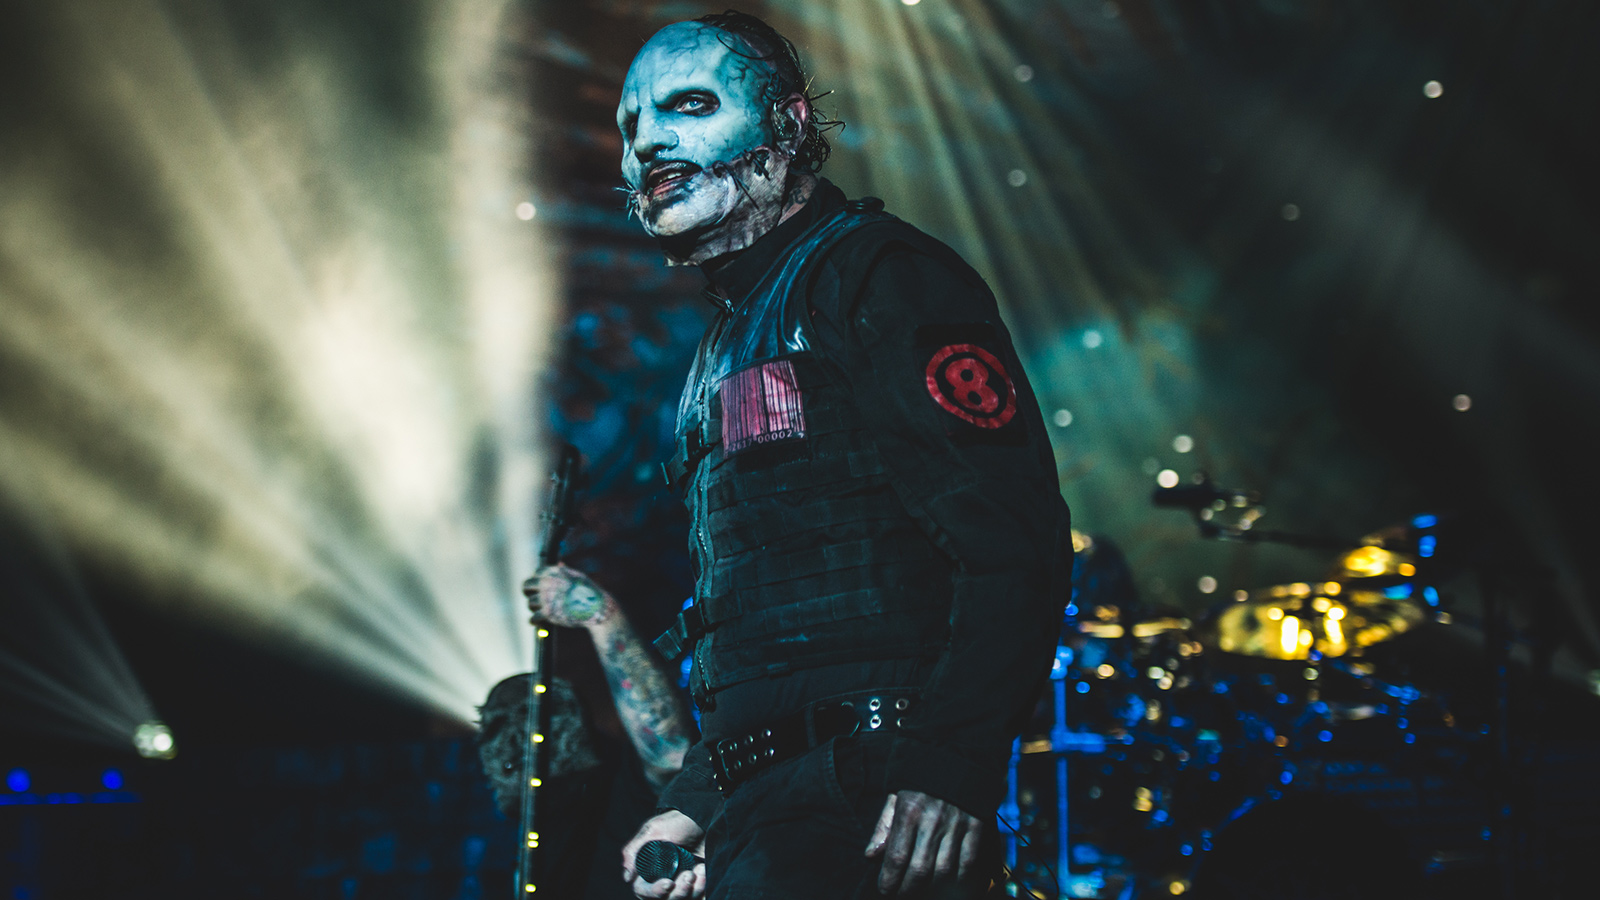 Slipknot All Out Life - 0425